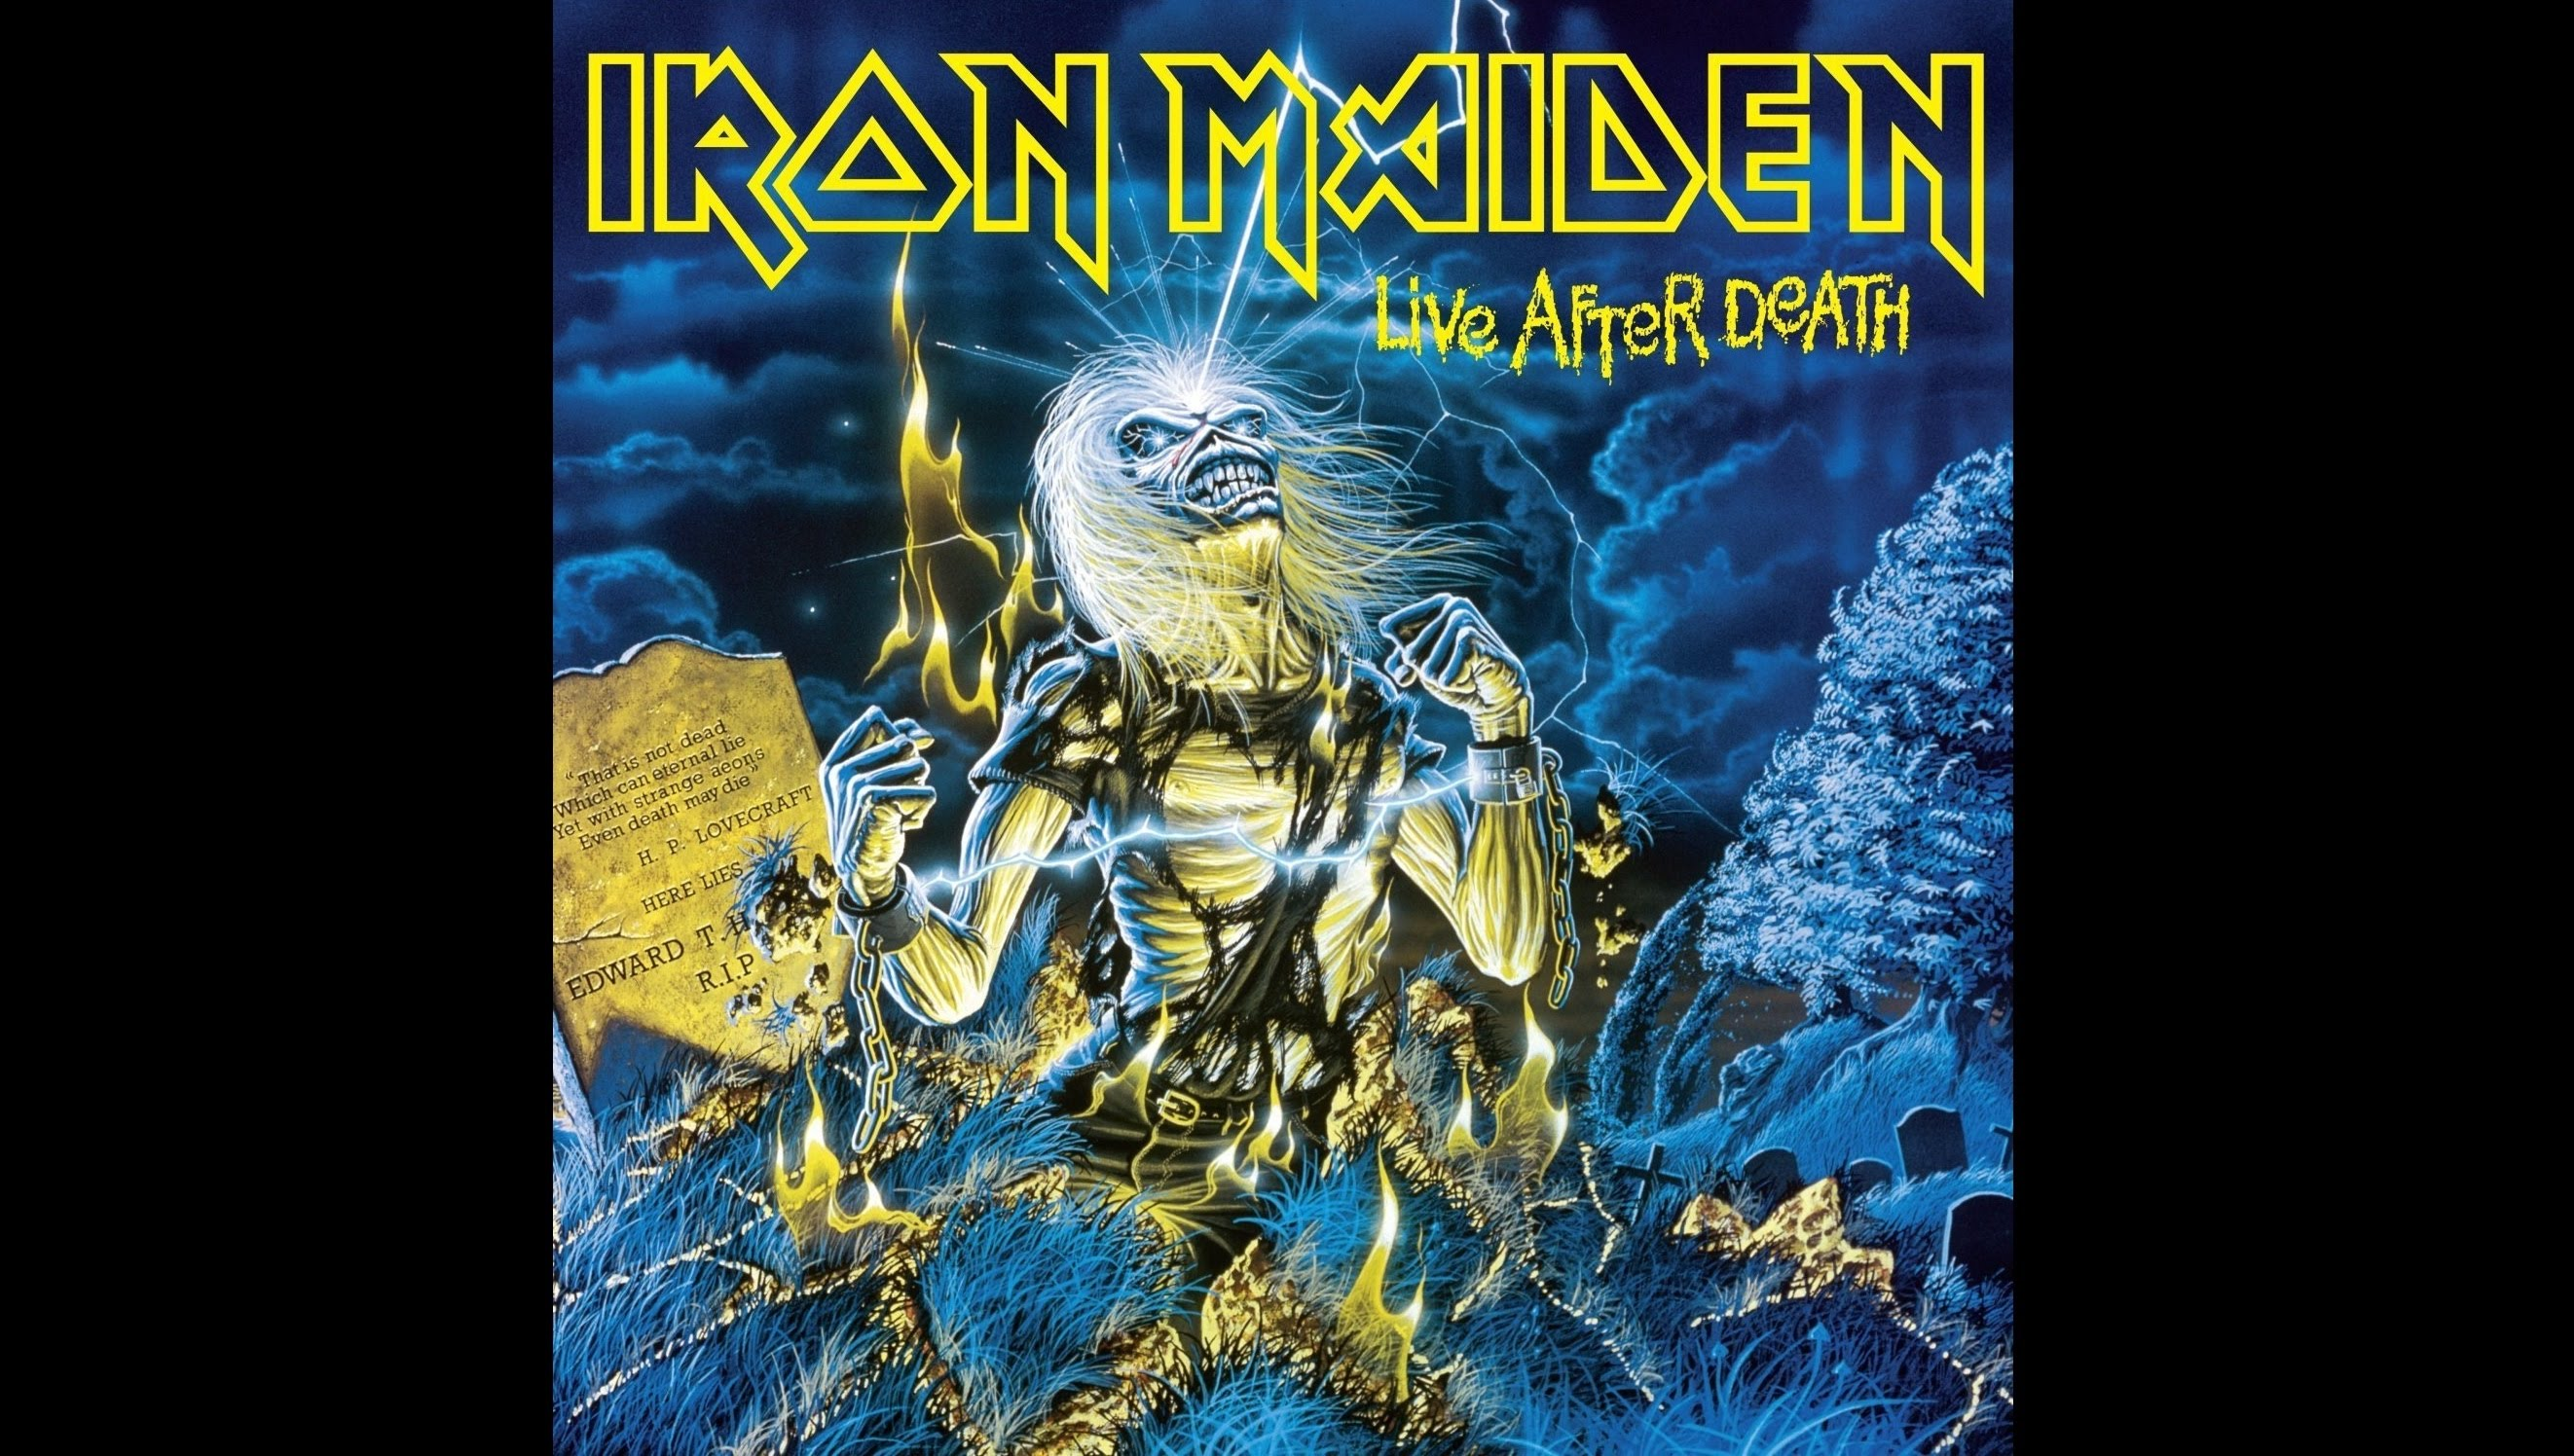 iron maiden mp3 songs download